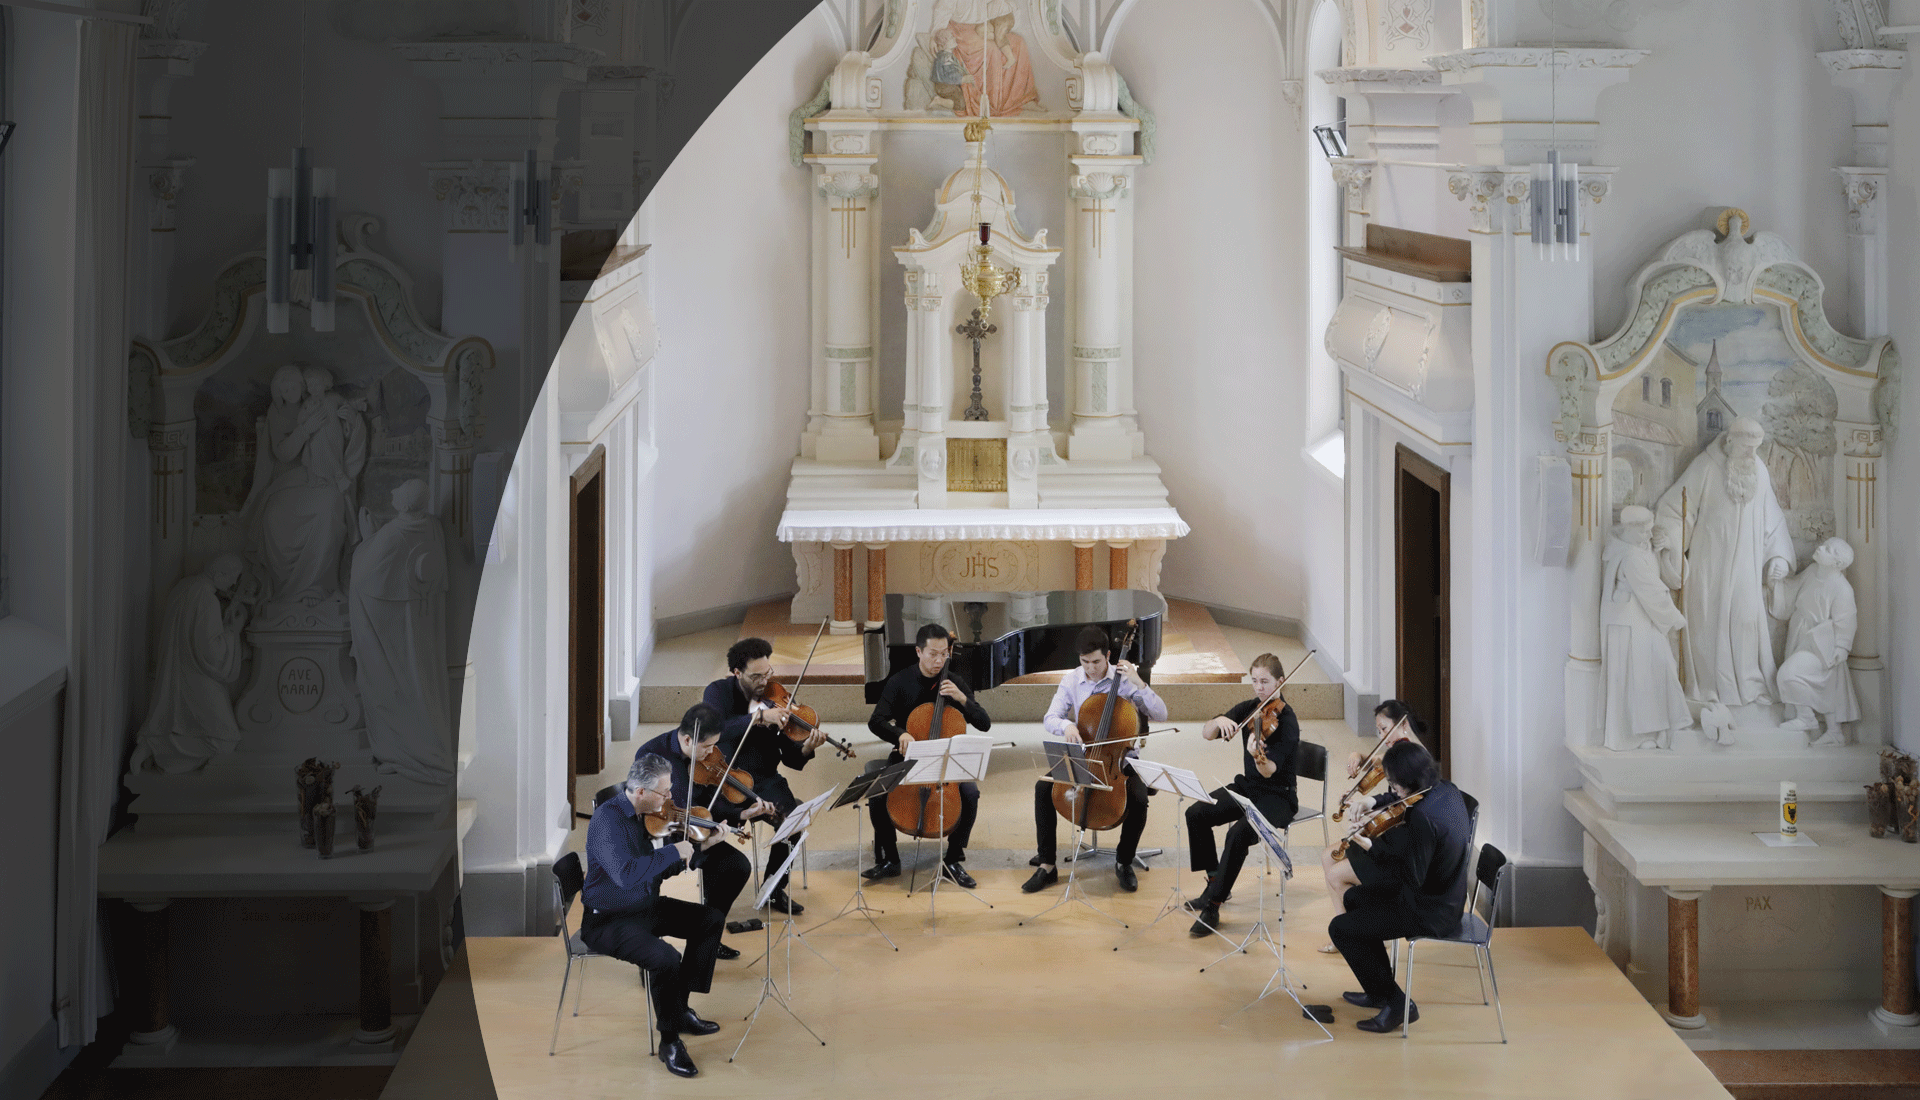 Concert at the Borromeo Music Festival 2018